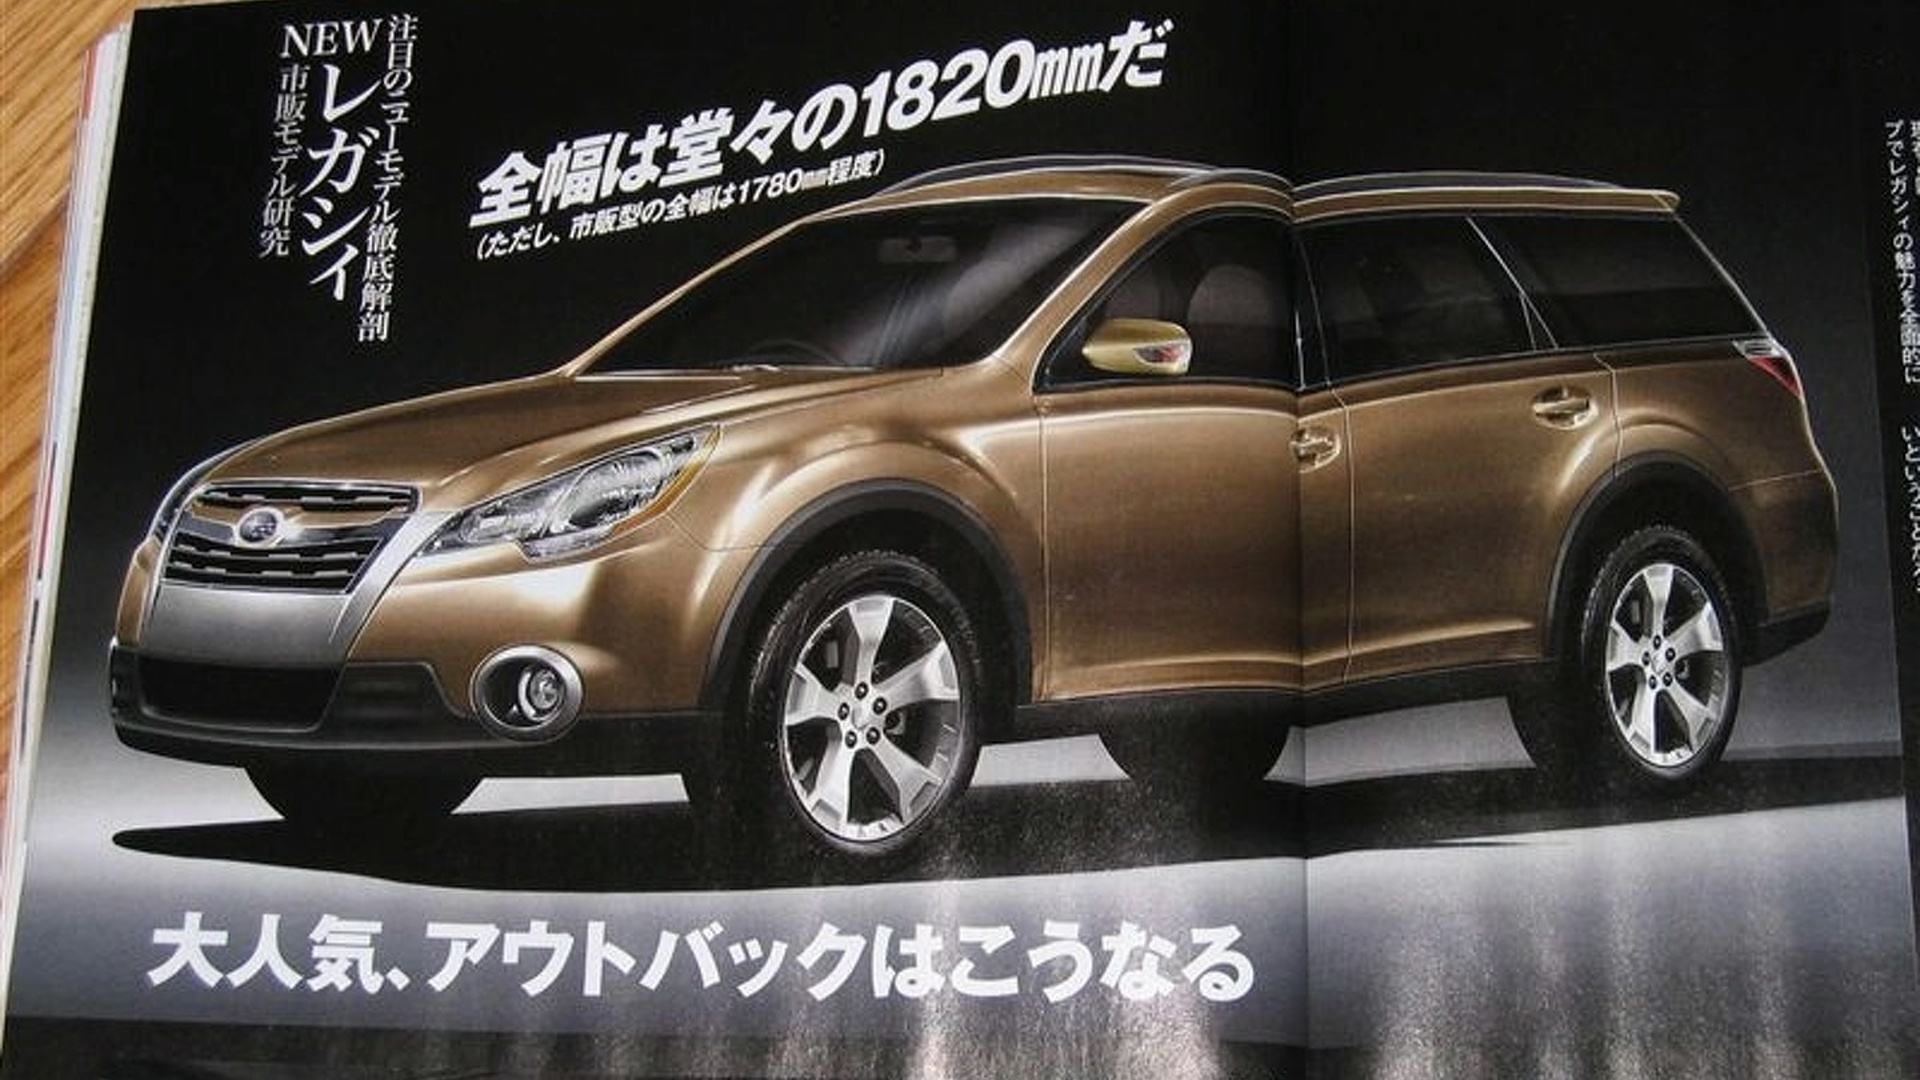 Rendered Speculation: 2010 Subaru Legacy